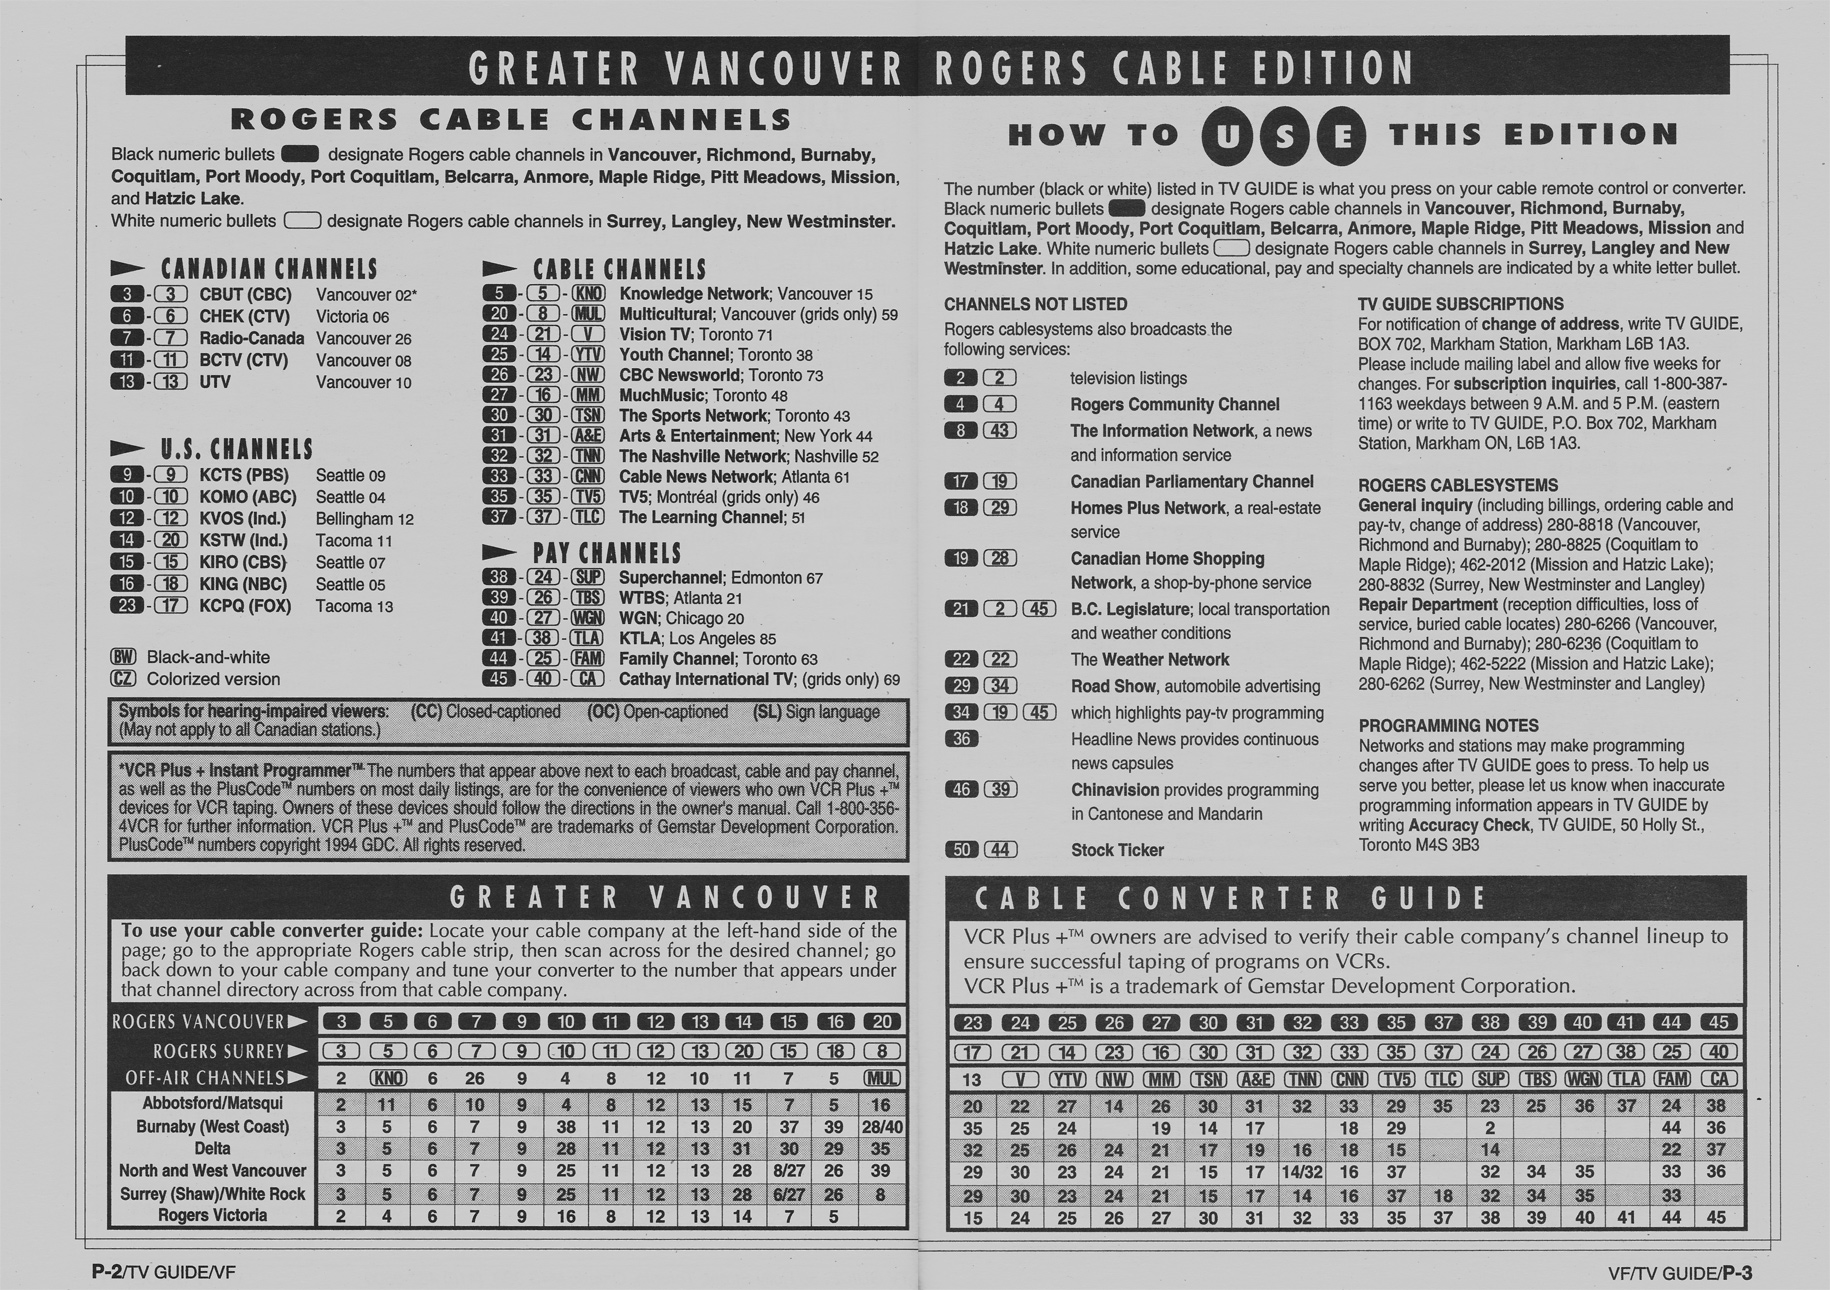 TV Guide May 21 1994 Vancouver Rogers Cable Edition Cable Converter Guide